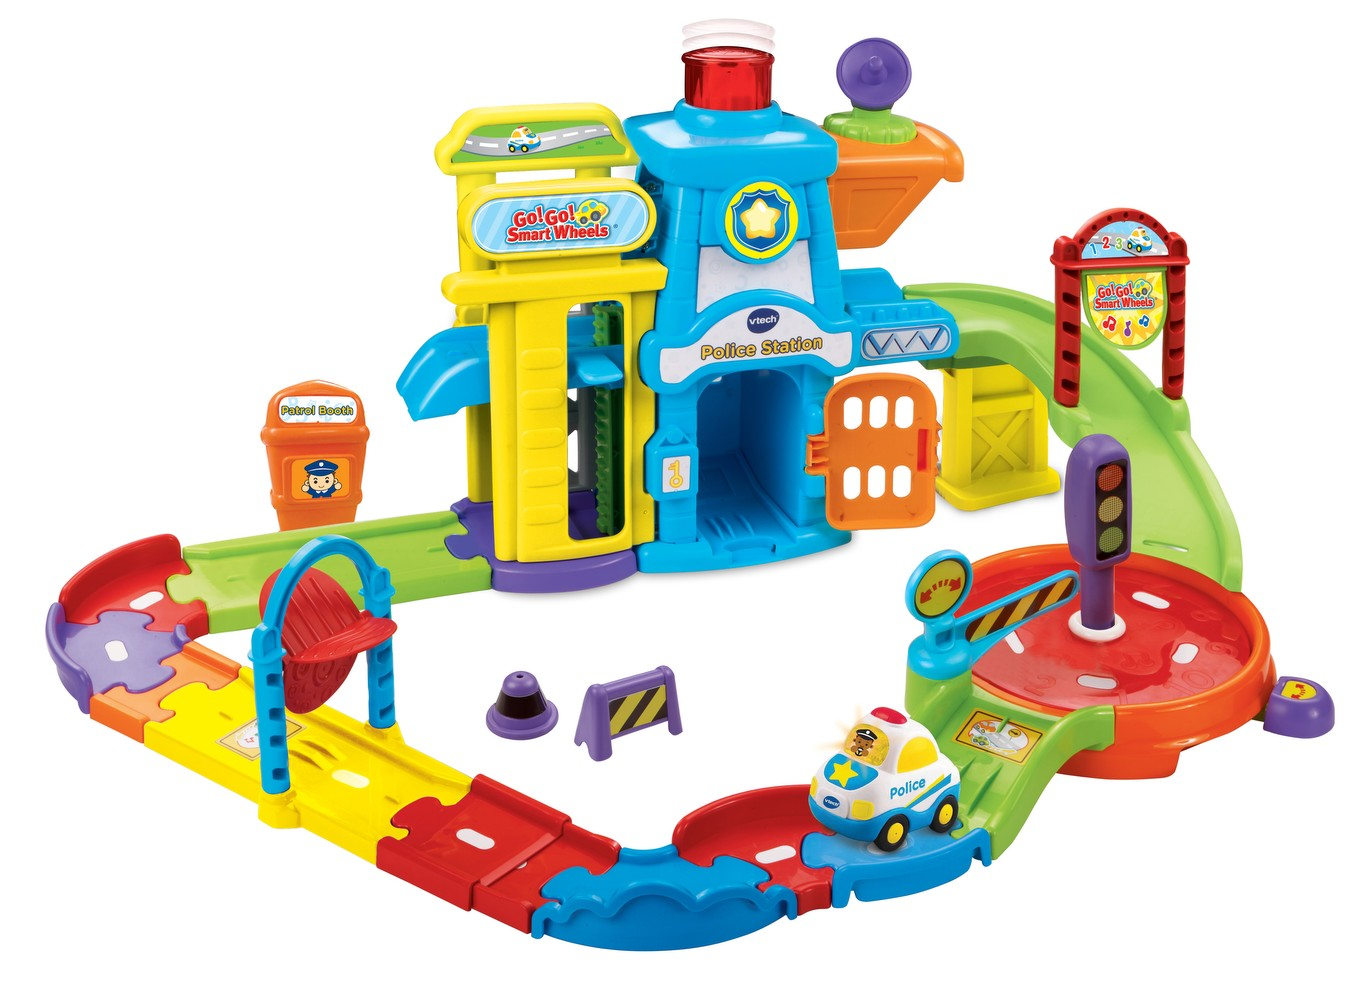 Toys For 2 And Up : Go smart wheels │ police station playset vtech